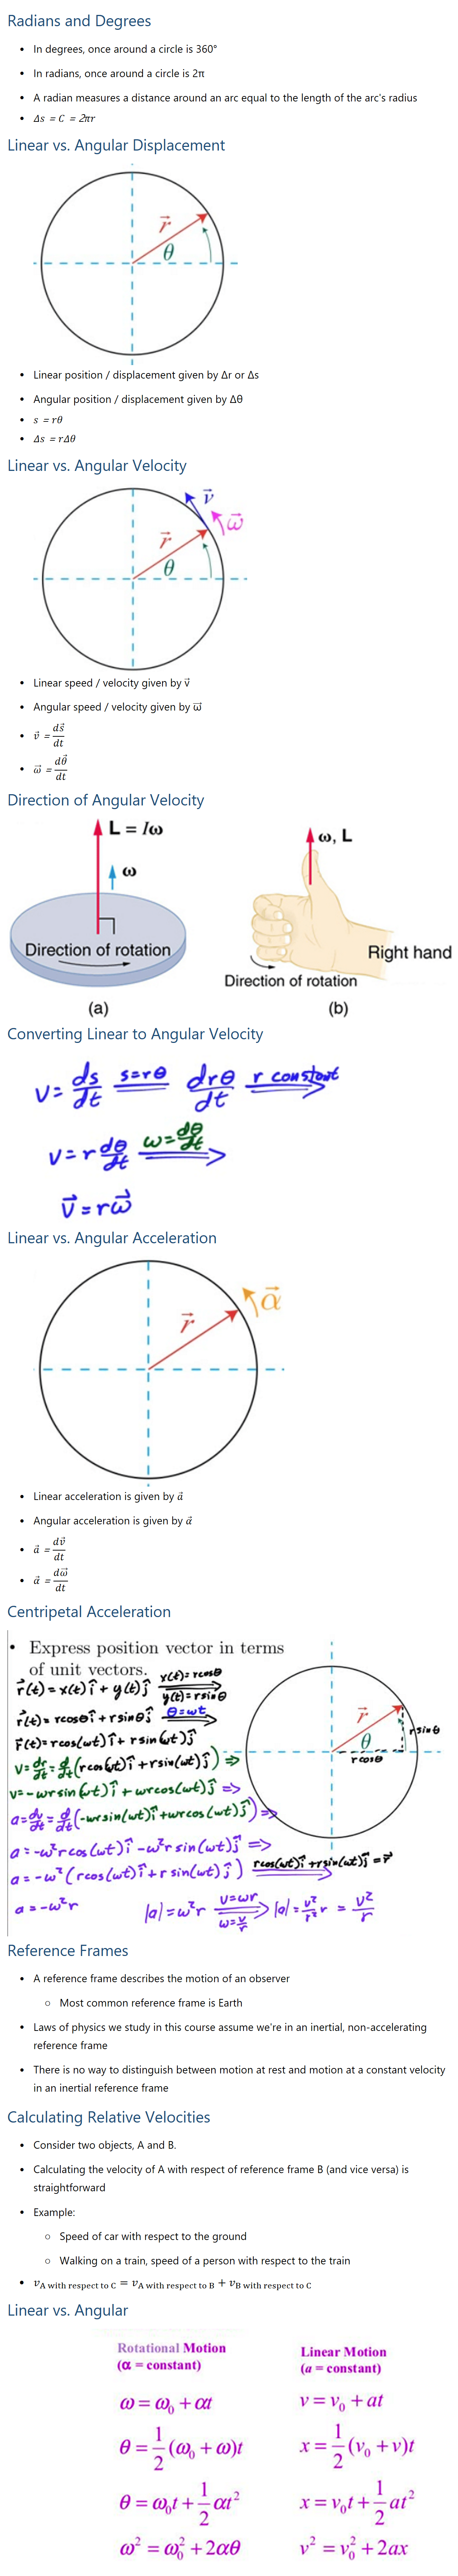 Radians and Degrees • In degrees, once around a circle is 360° • In radians, once around a circle is 2π • A radian measures a distance around an arc equal to the length of the arcs radius • Δs=C=2πr Linear vs. Angular Displacement • Linear position / displacement given by Δr or Δs • Angular position / displacement given by Δθ • s=rθ • Δs=rΔθ Linear vs. Angular Velocity • Linear speed / velocity given by v ⃗ • Angular speed / velocity given by ω ⃗ • v ⃗=(ds ⃗)/dt • ω ⃗=(dθ ⃗)/dt Direction of Angular Velocity Converting Linear to Angular Velocity Linear vs. Angular Acceleration • Linear acceleration is given by a ⃗ • Angular acceleration is given by α ⃗ • a ⃗=(dv ⃗)/dt • α ⃗=(dω ⃗)/dt Centripetal Acceleration Reference Frames • A reference frame describes the motion of an observer ○ Most common reference frame is Earth • Laws of physics we study in this course assume were in an inertial, non-accelerating reference frame • There is no way to distinguish between motion at rest and motion at a constant velocity in an inertial reference frame Calculating Relative Velocities • Consider two objects, A and B. • Calculating the velocity of A with respect of reference frame B (and vice versa) is straightforward • Example: ○ Speed of car with respect to the ground ○ Walking on a train, speed of a person with respect to the train • v_(A with respect to C)=v_(A with respect to B)+v_(B with respect to C) Linear vs. Angular